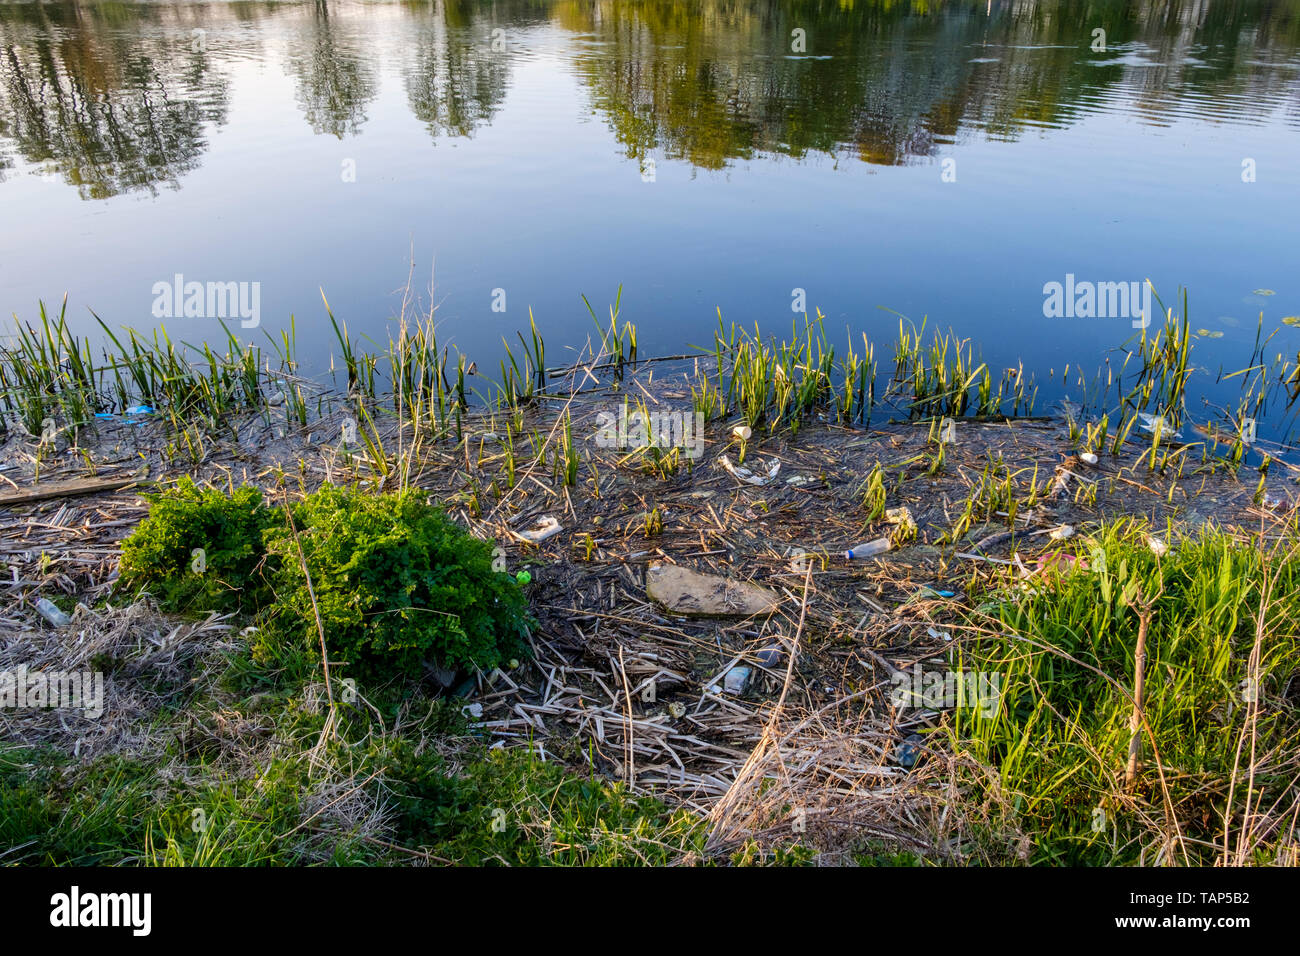 River pollution. Plastic bottles and other litter and rubbish in reeds on the riverbank, River Trent, Nottinghamshire, England, UK - Stock Image